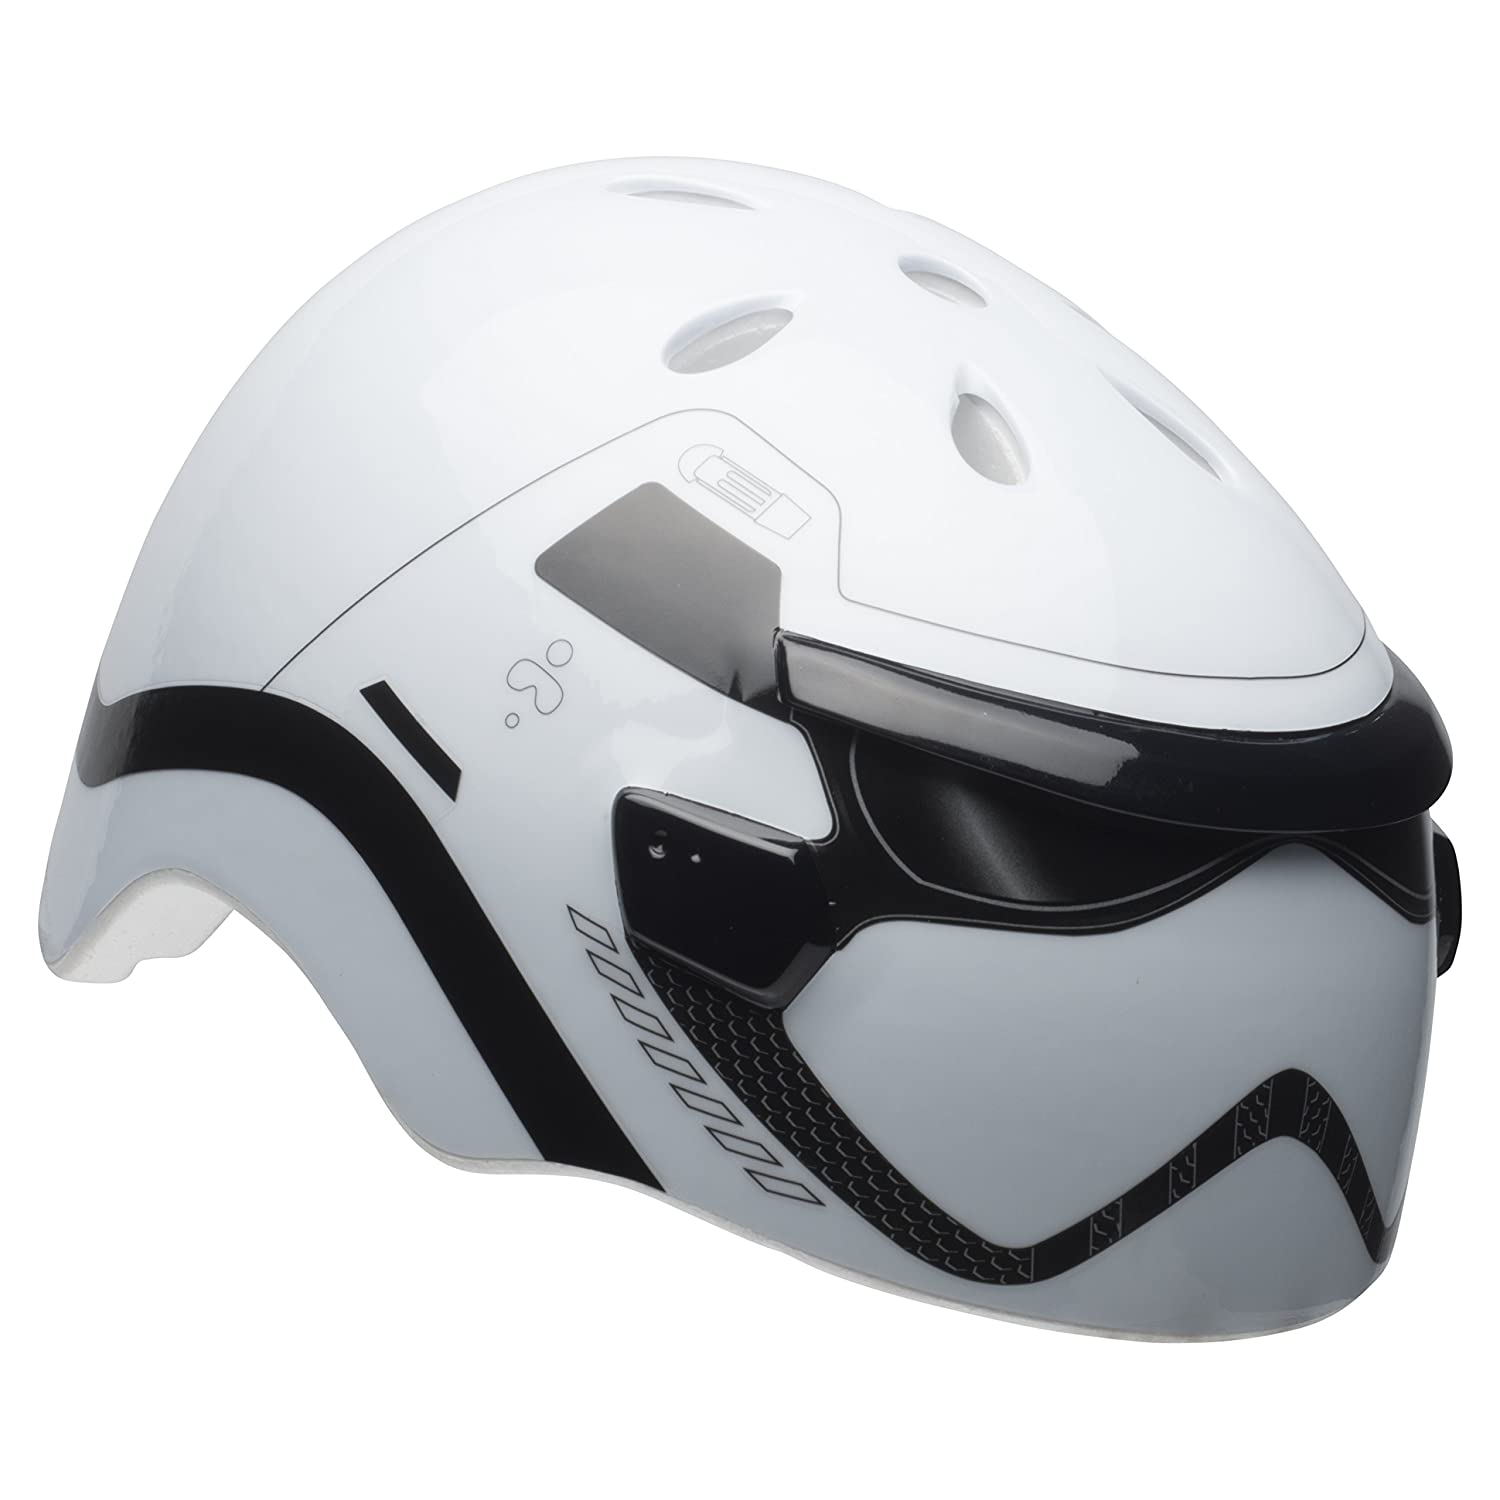 Bell Kids' Star Wars 3D Trooper MS Helmet, Multi Coloured, 50-54 cm 7095425